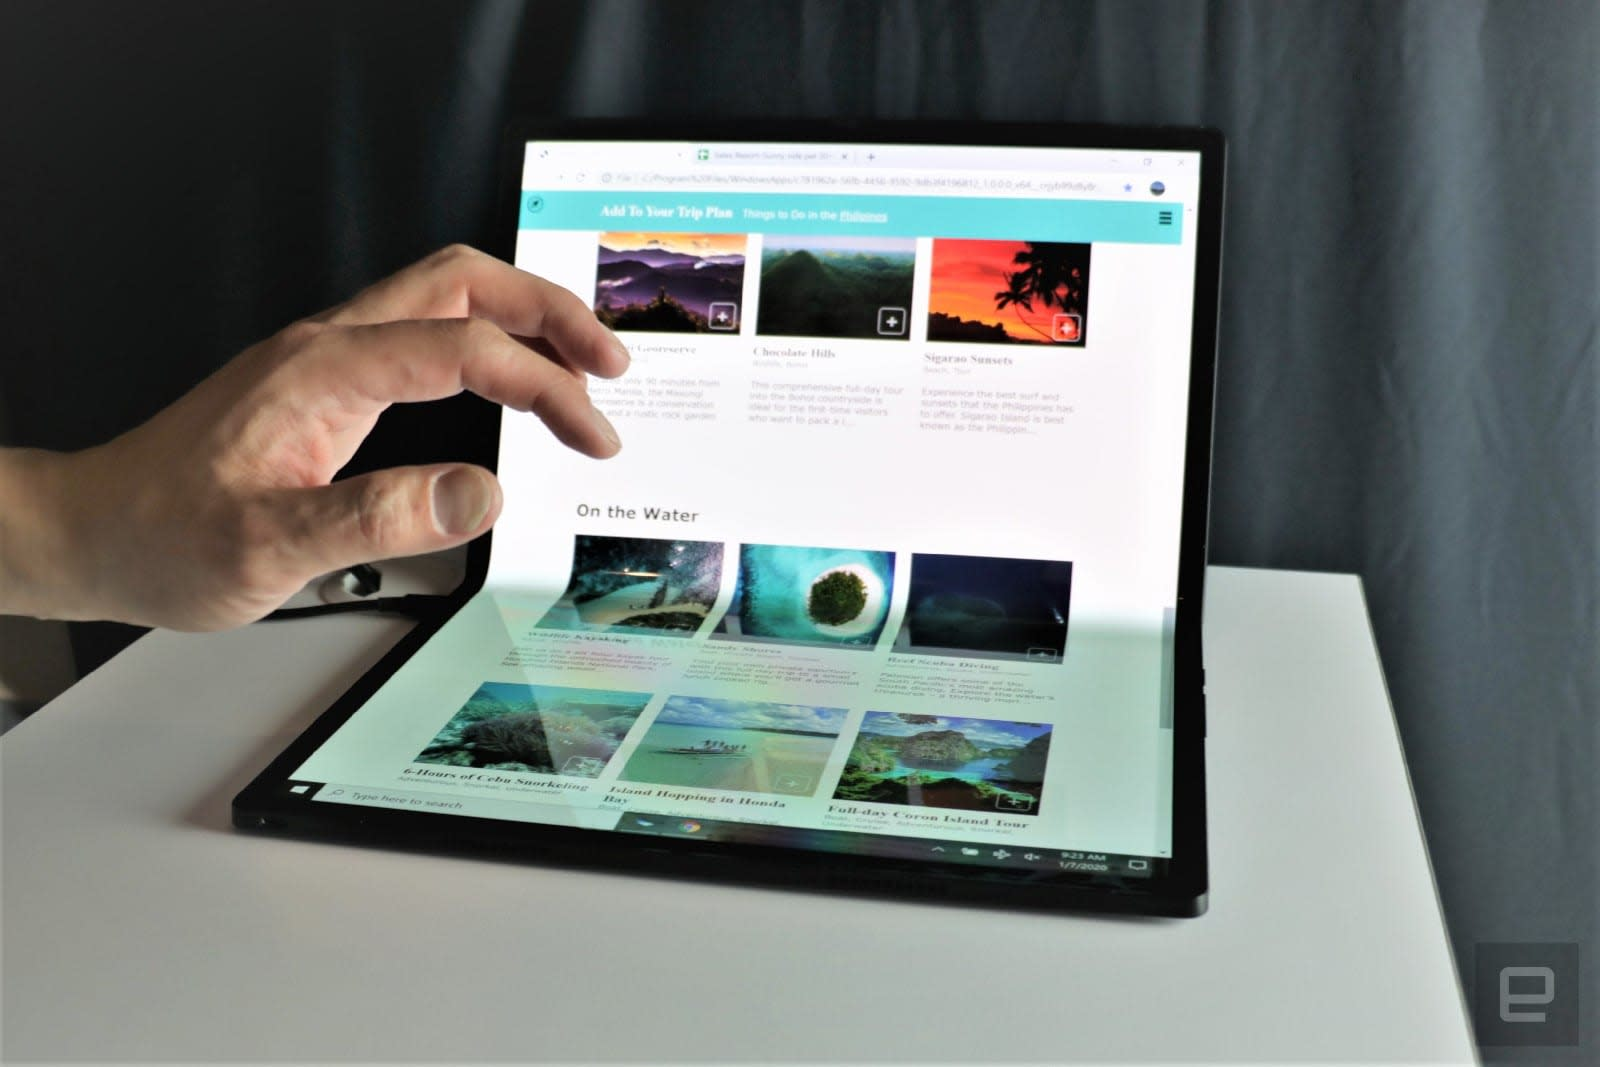 Intel Horseshoe Bend foldable tablet PC hands-on at CES 2020